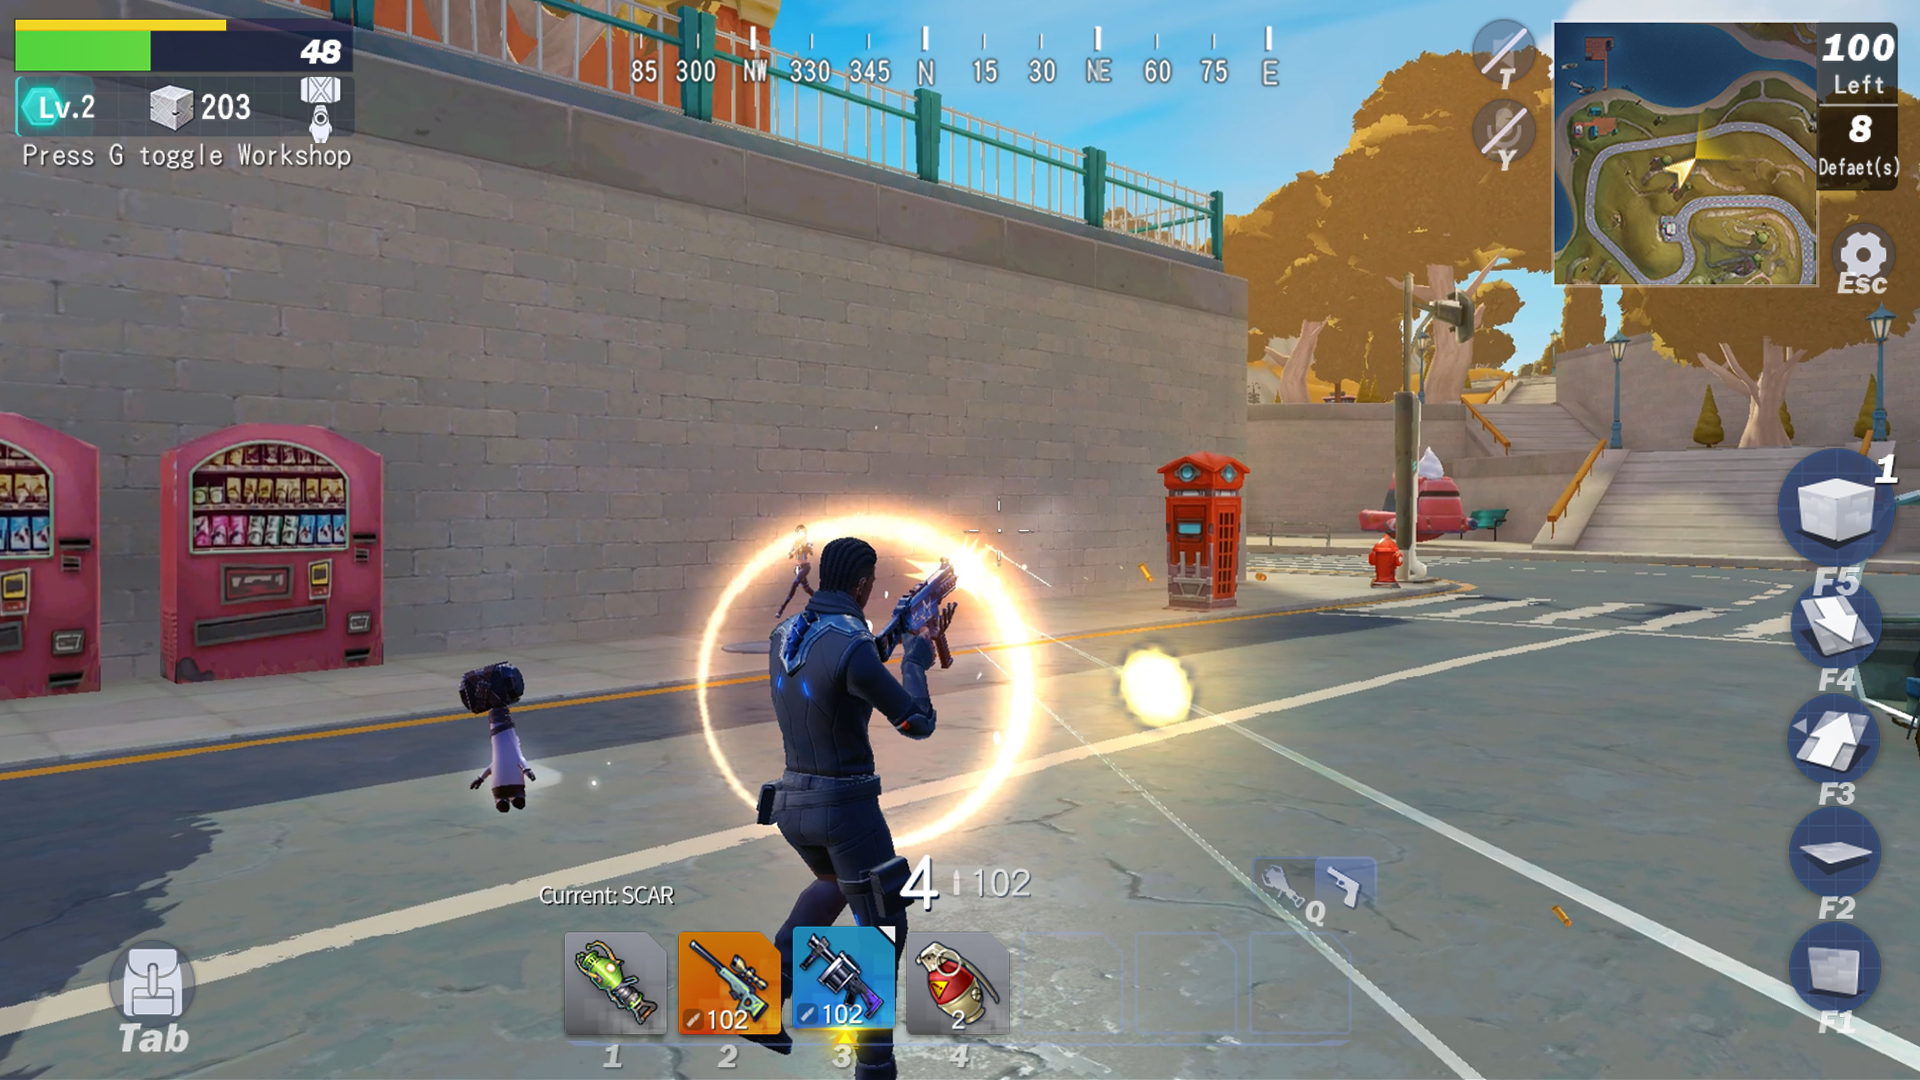 Cuisine Royale Malware Creative Destruction On Steam